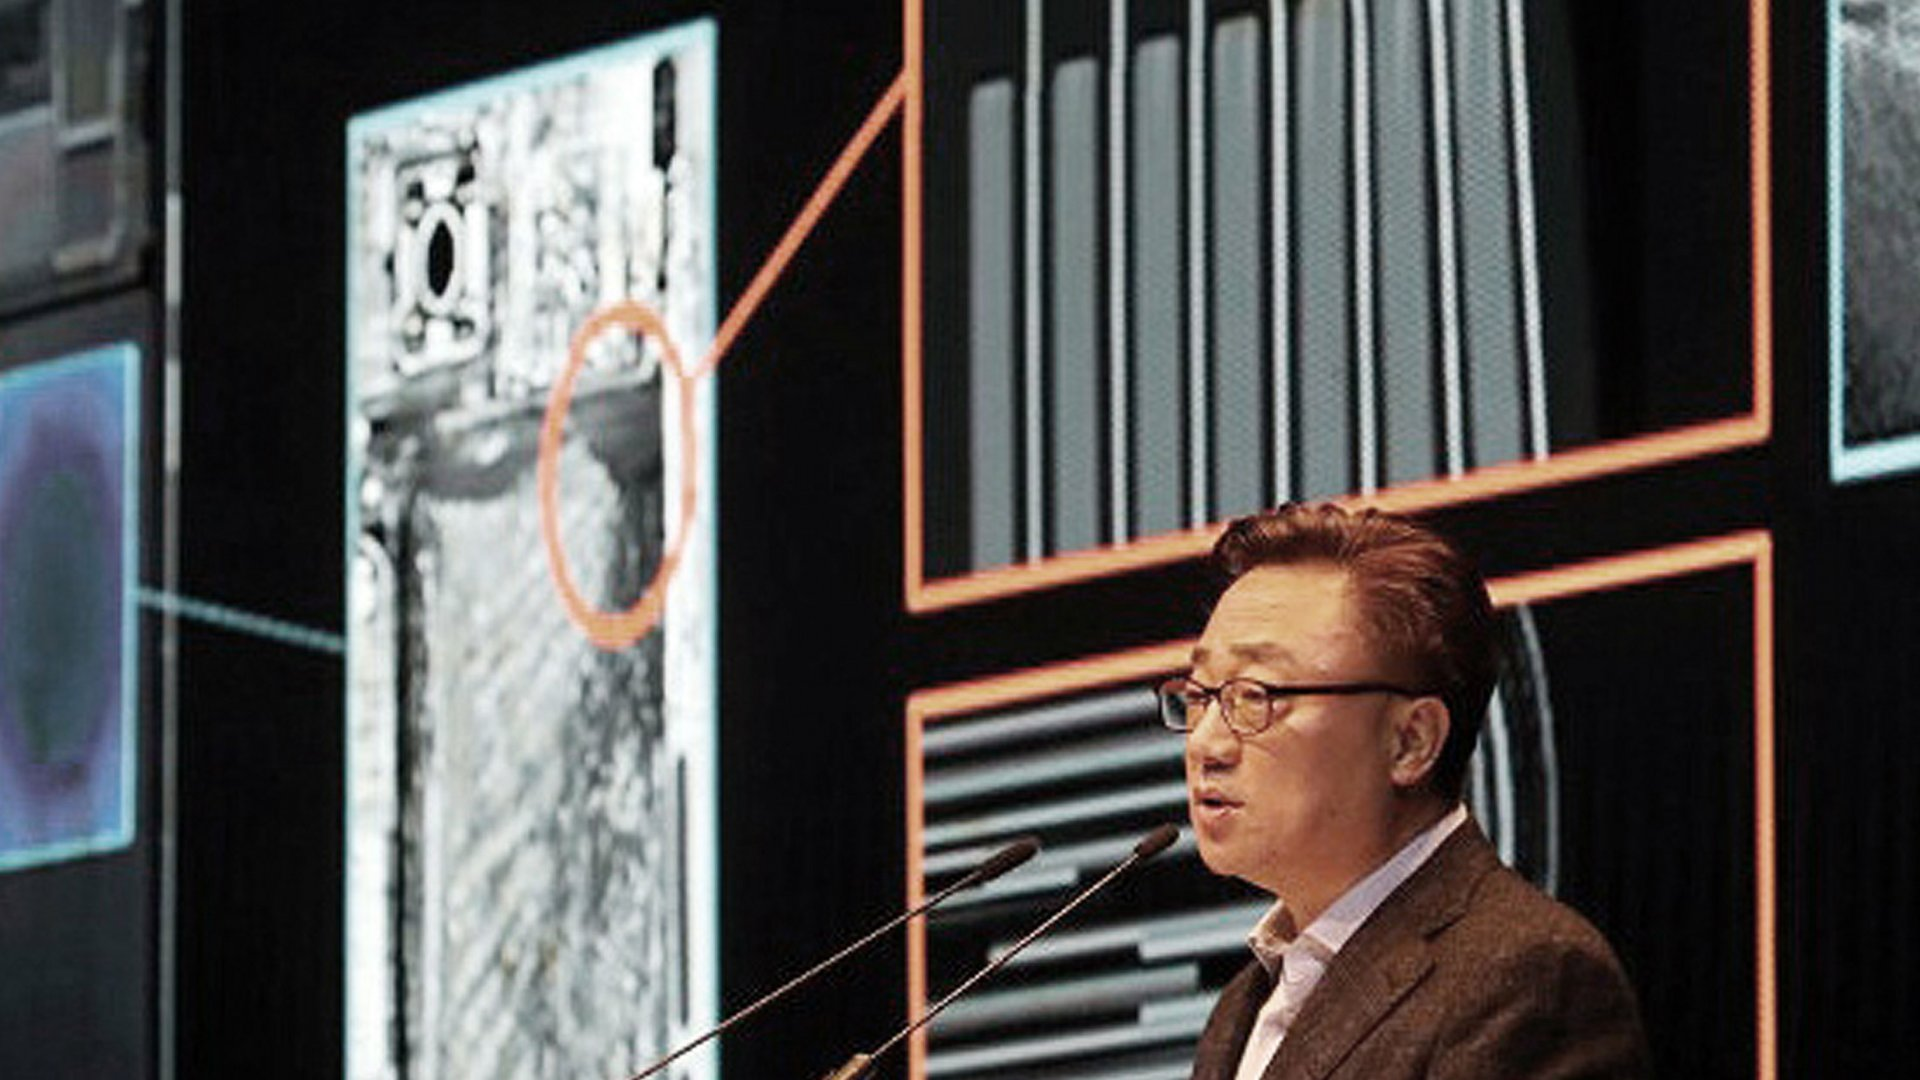 Samsung Electronics's mobile president Koh Dong-jin speaks during a press conference at its headquarters in Seoul, South Korea, Monday, Jan. 23, 2017. Samsung Electronics Co. said Monday that problems with the design and manufacturing of batteries in its Galaxy Note 7 smartphones caused them to overheat and burst into fire.